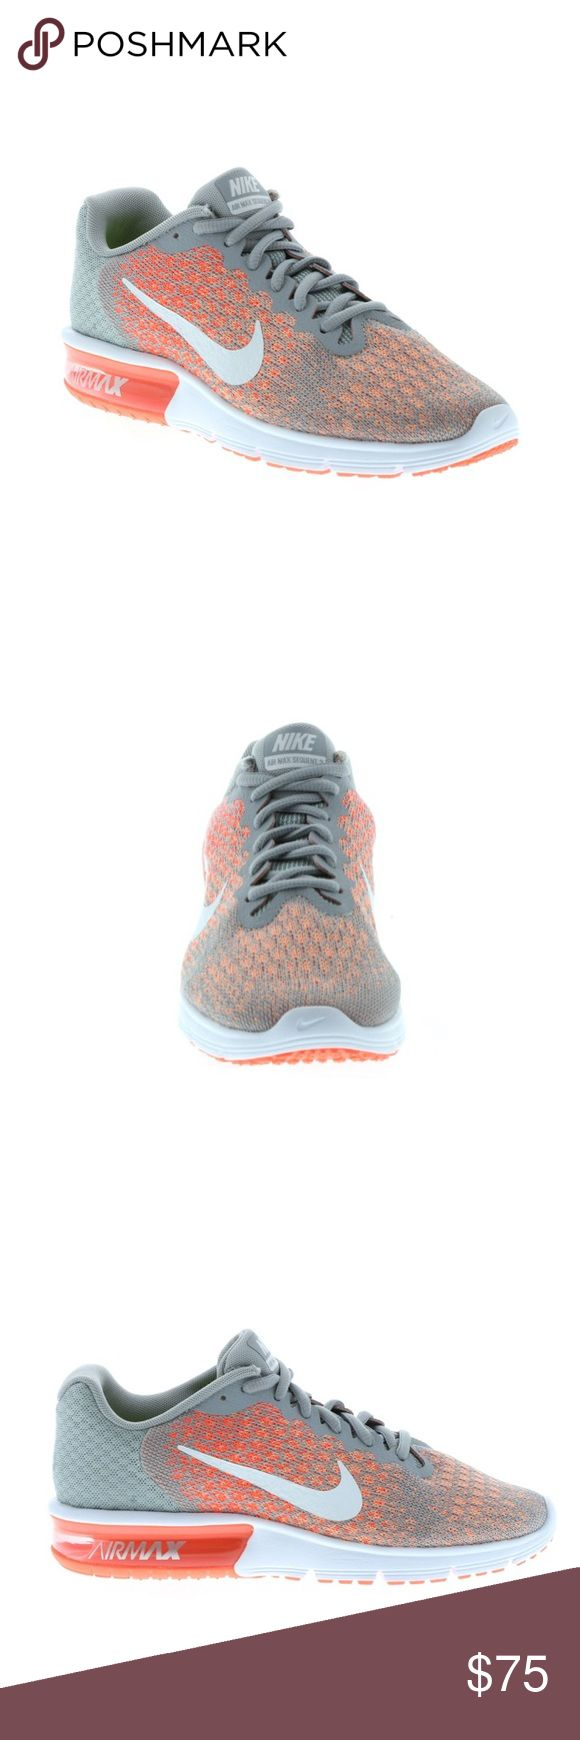 Nike Air Max Sequent 2 Wolf Grey/White/Bright Mango/Sunset Glow   Set your stride in alignment in the lightweight performance and cushioning shoe. Neutral to underpronation (supination).     Shoe features an engineered knit upper that's flexible closer to your toe, while lending more support throughout the foot. A Max Air heel unit lends responsive cushioning for miles. Articulated grooves enhance forefoot flexibility Foam midsole for lightweight cushioning and comfort Rubber outsole for…